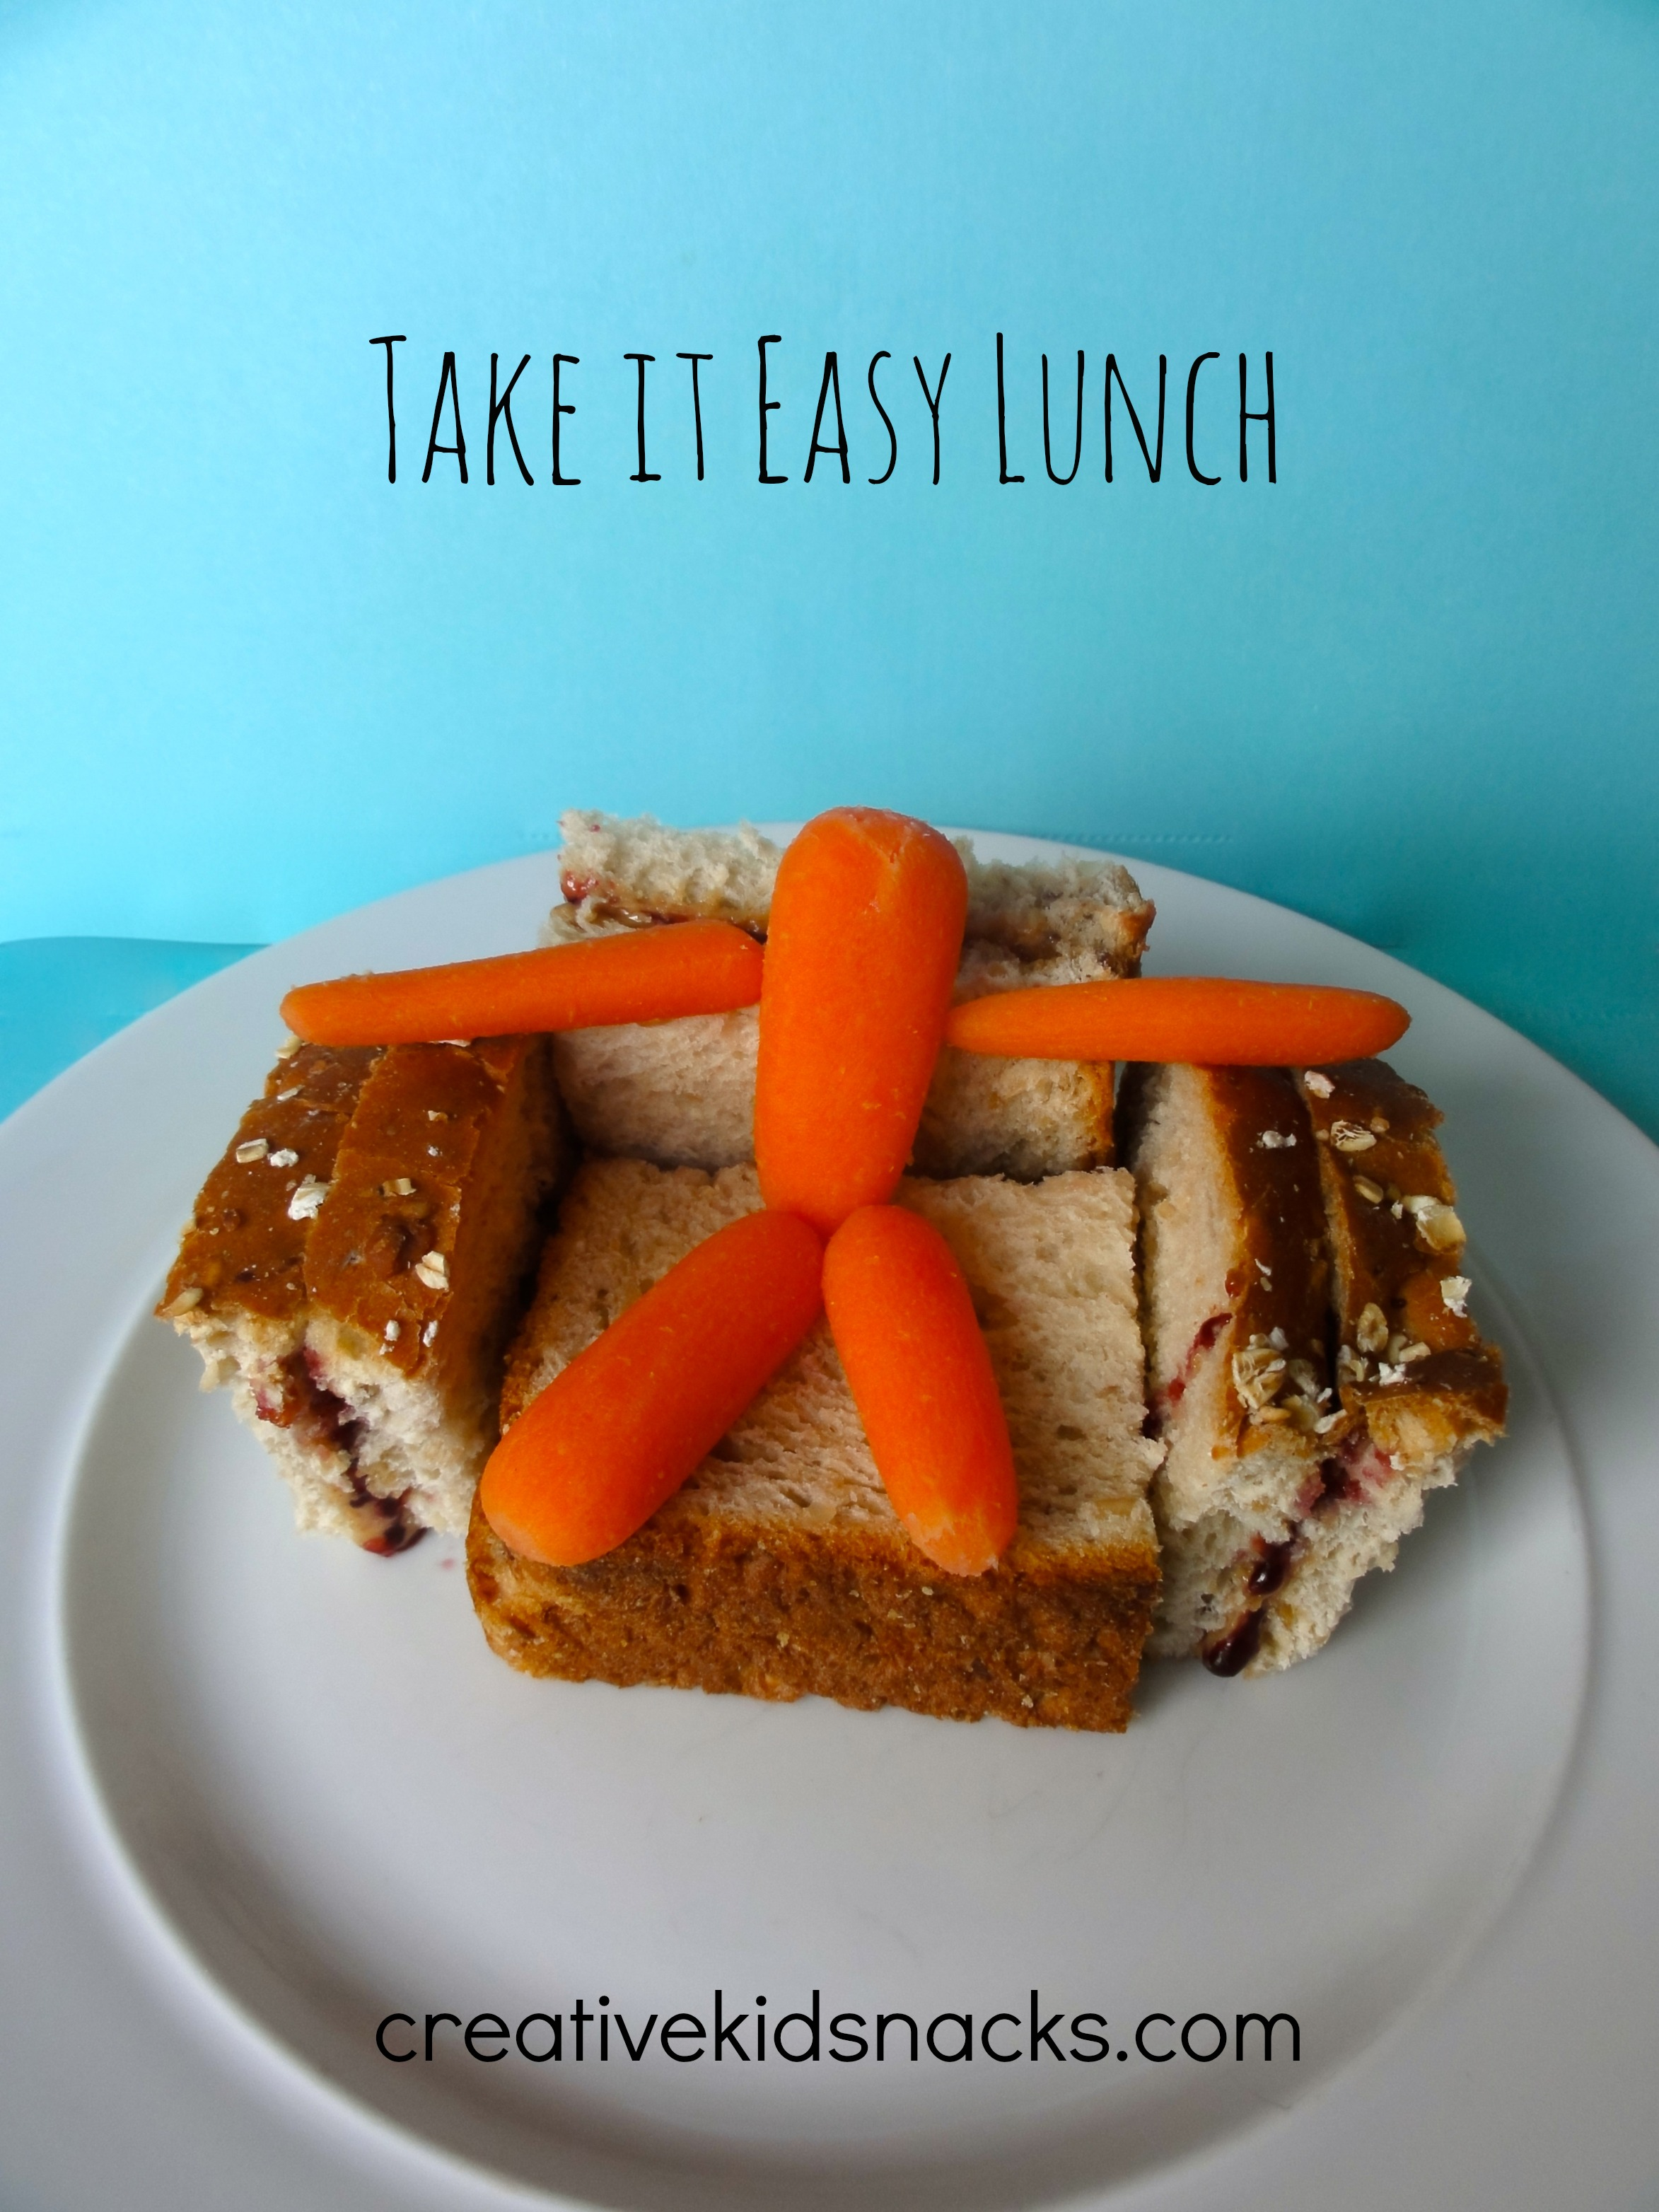 Creative Sandwich Recipe for Kids